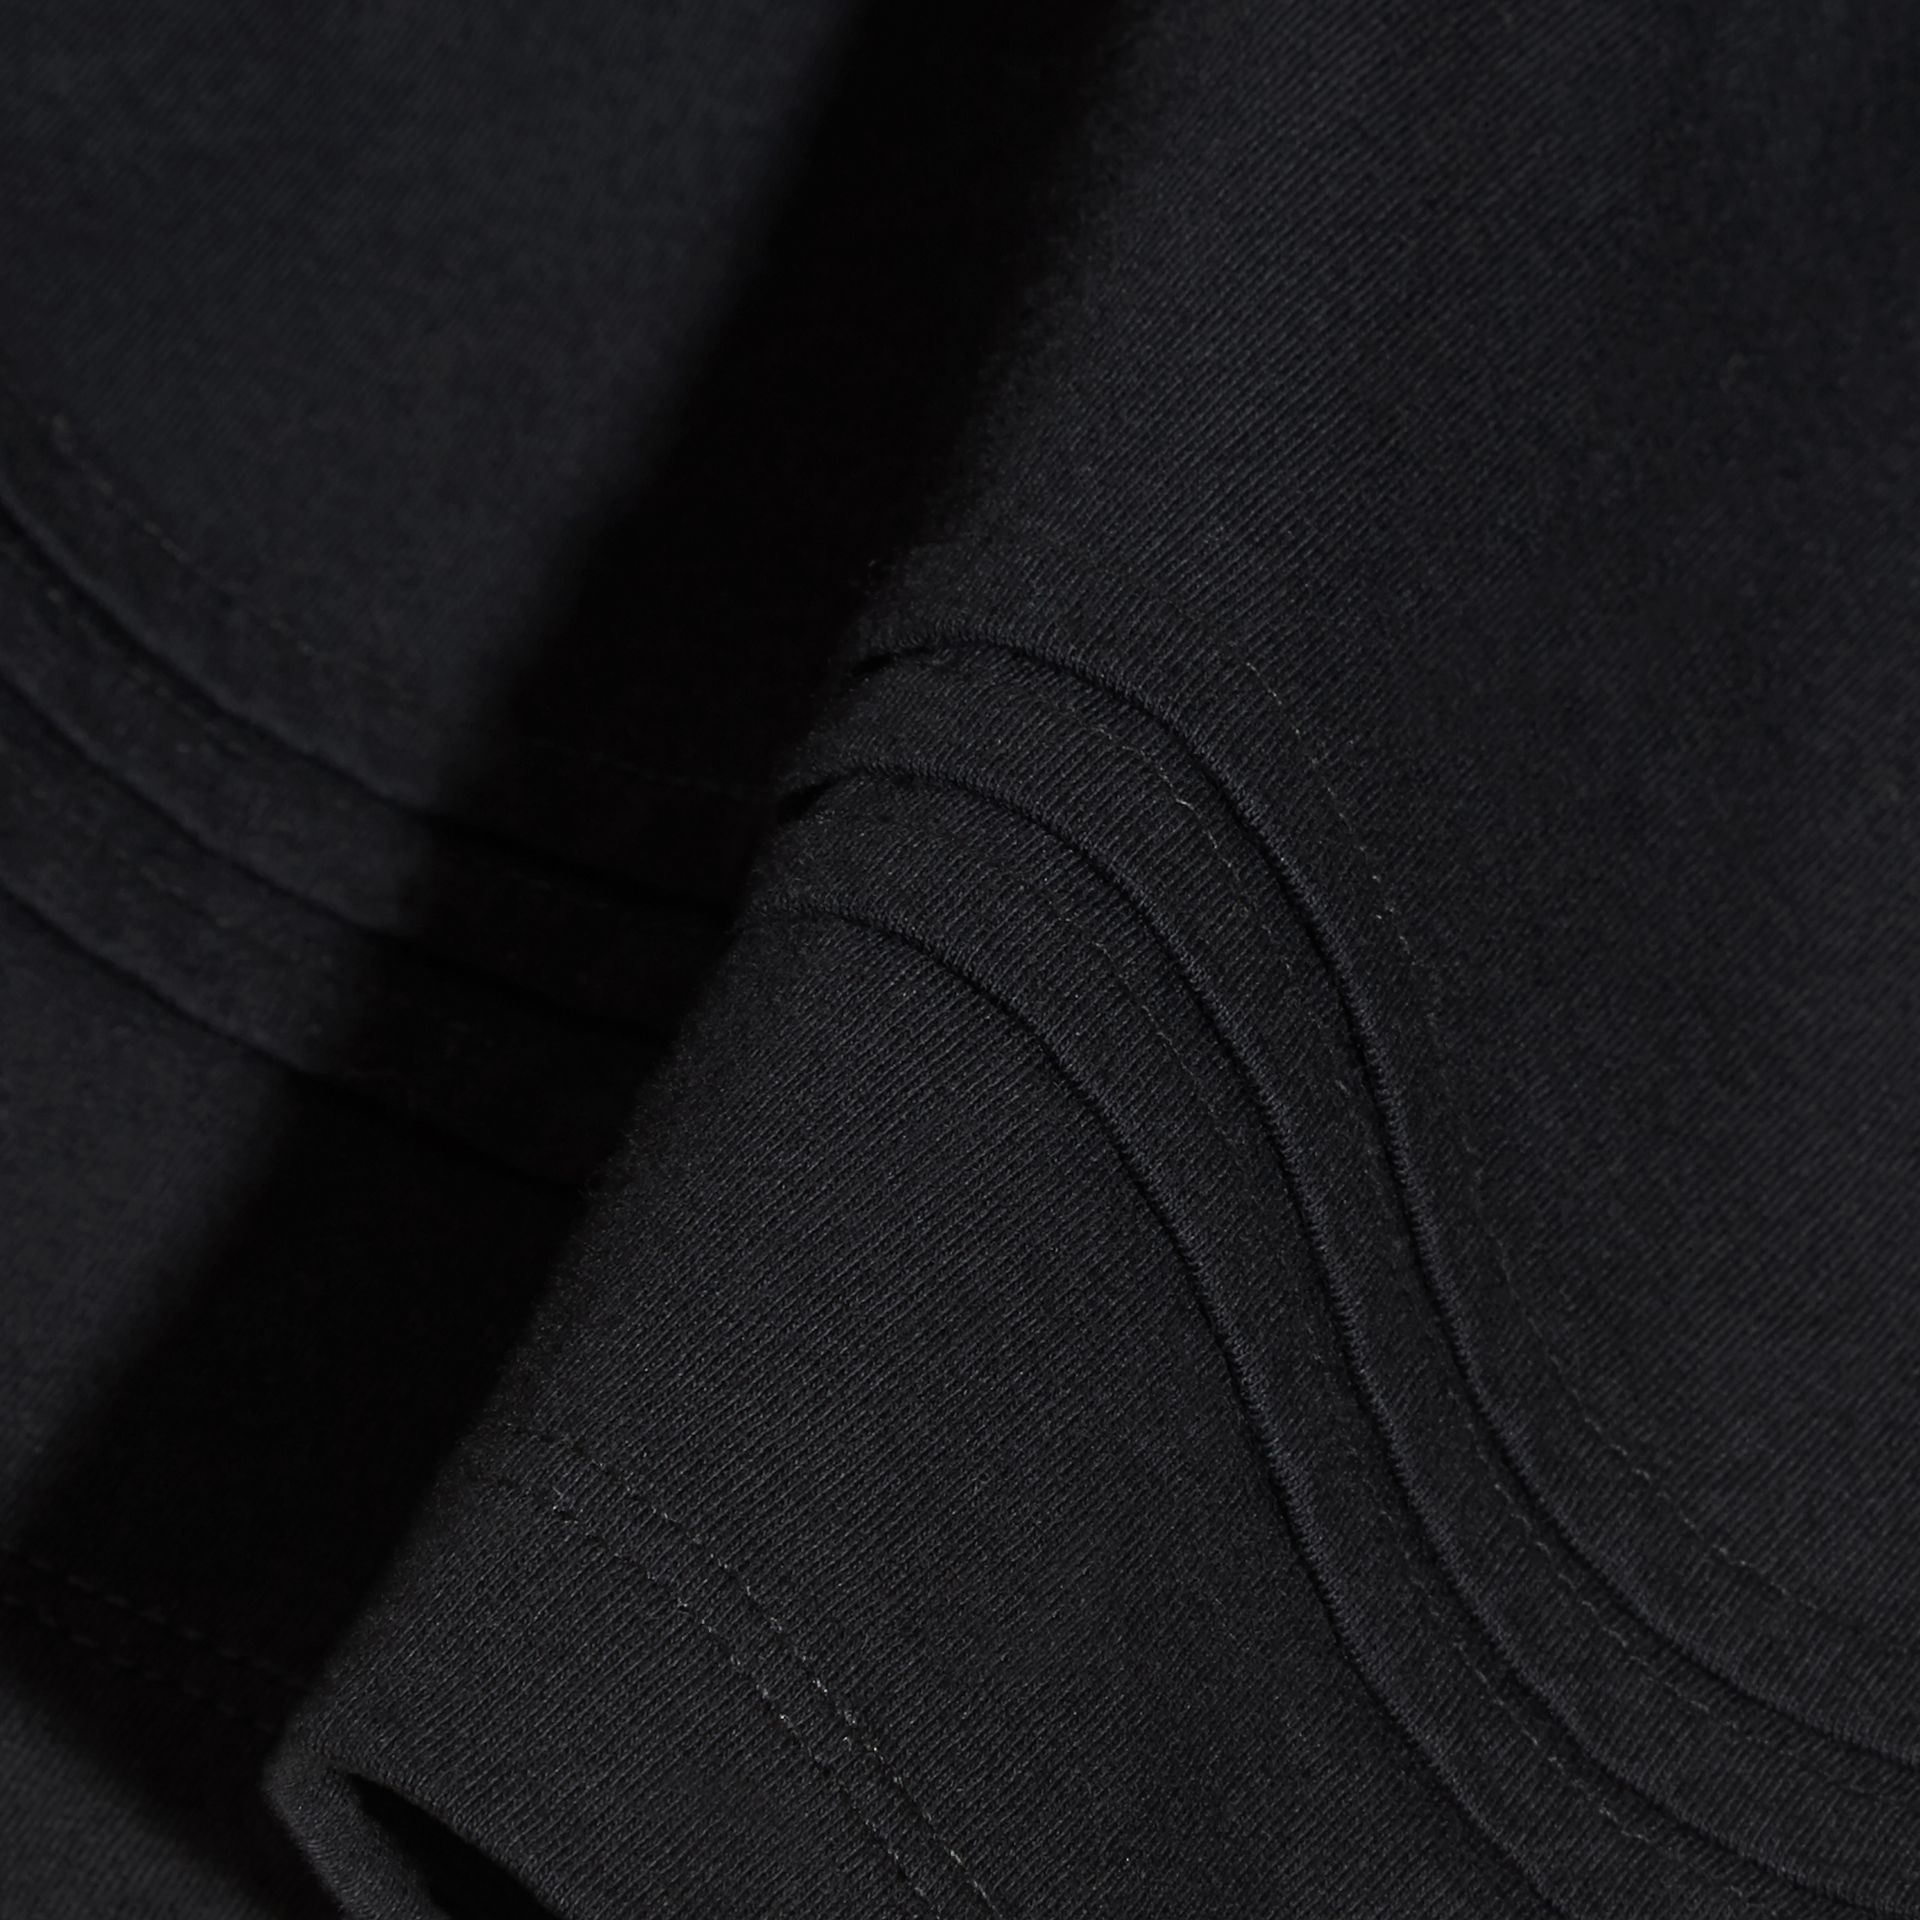 Black Pleat Detail Check Cotton T-Shirt Black - gallery image 2